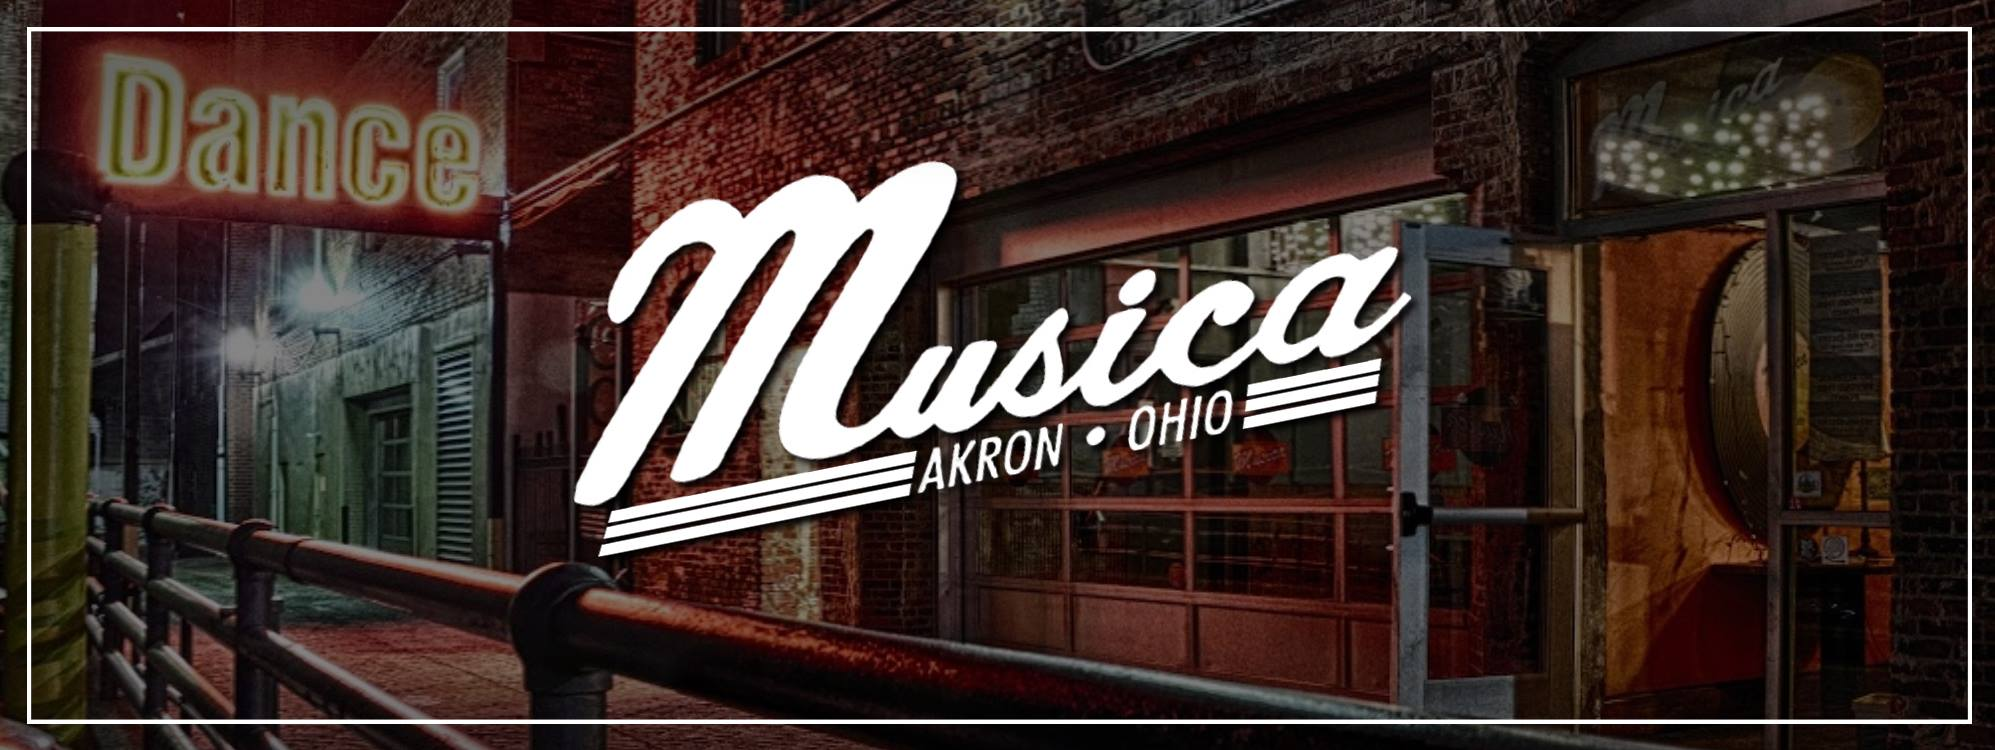 Musica (Jenn Kidd) is taking over the @everydayakron Instagram account the week of August 18